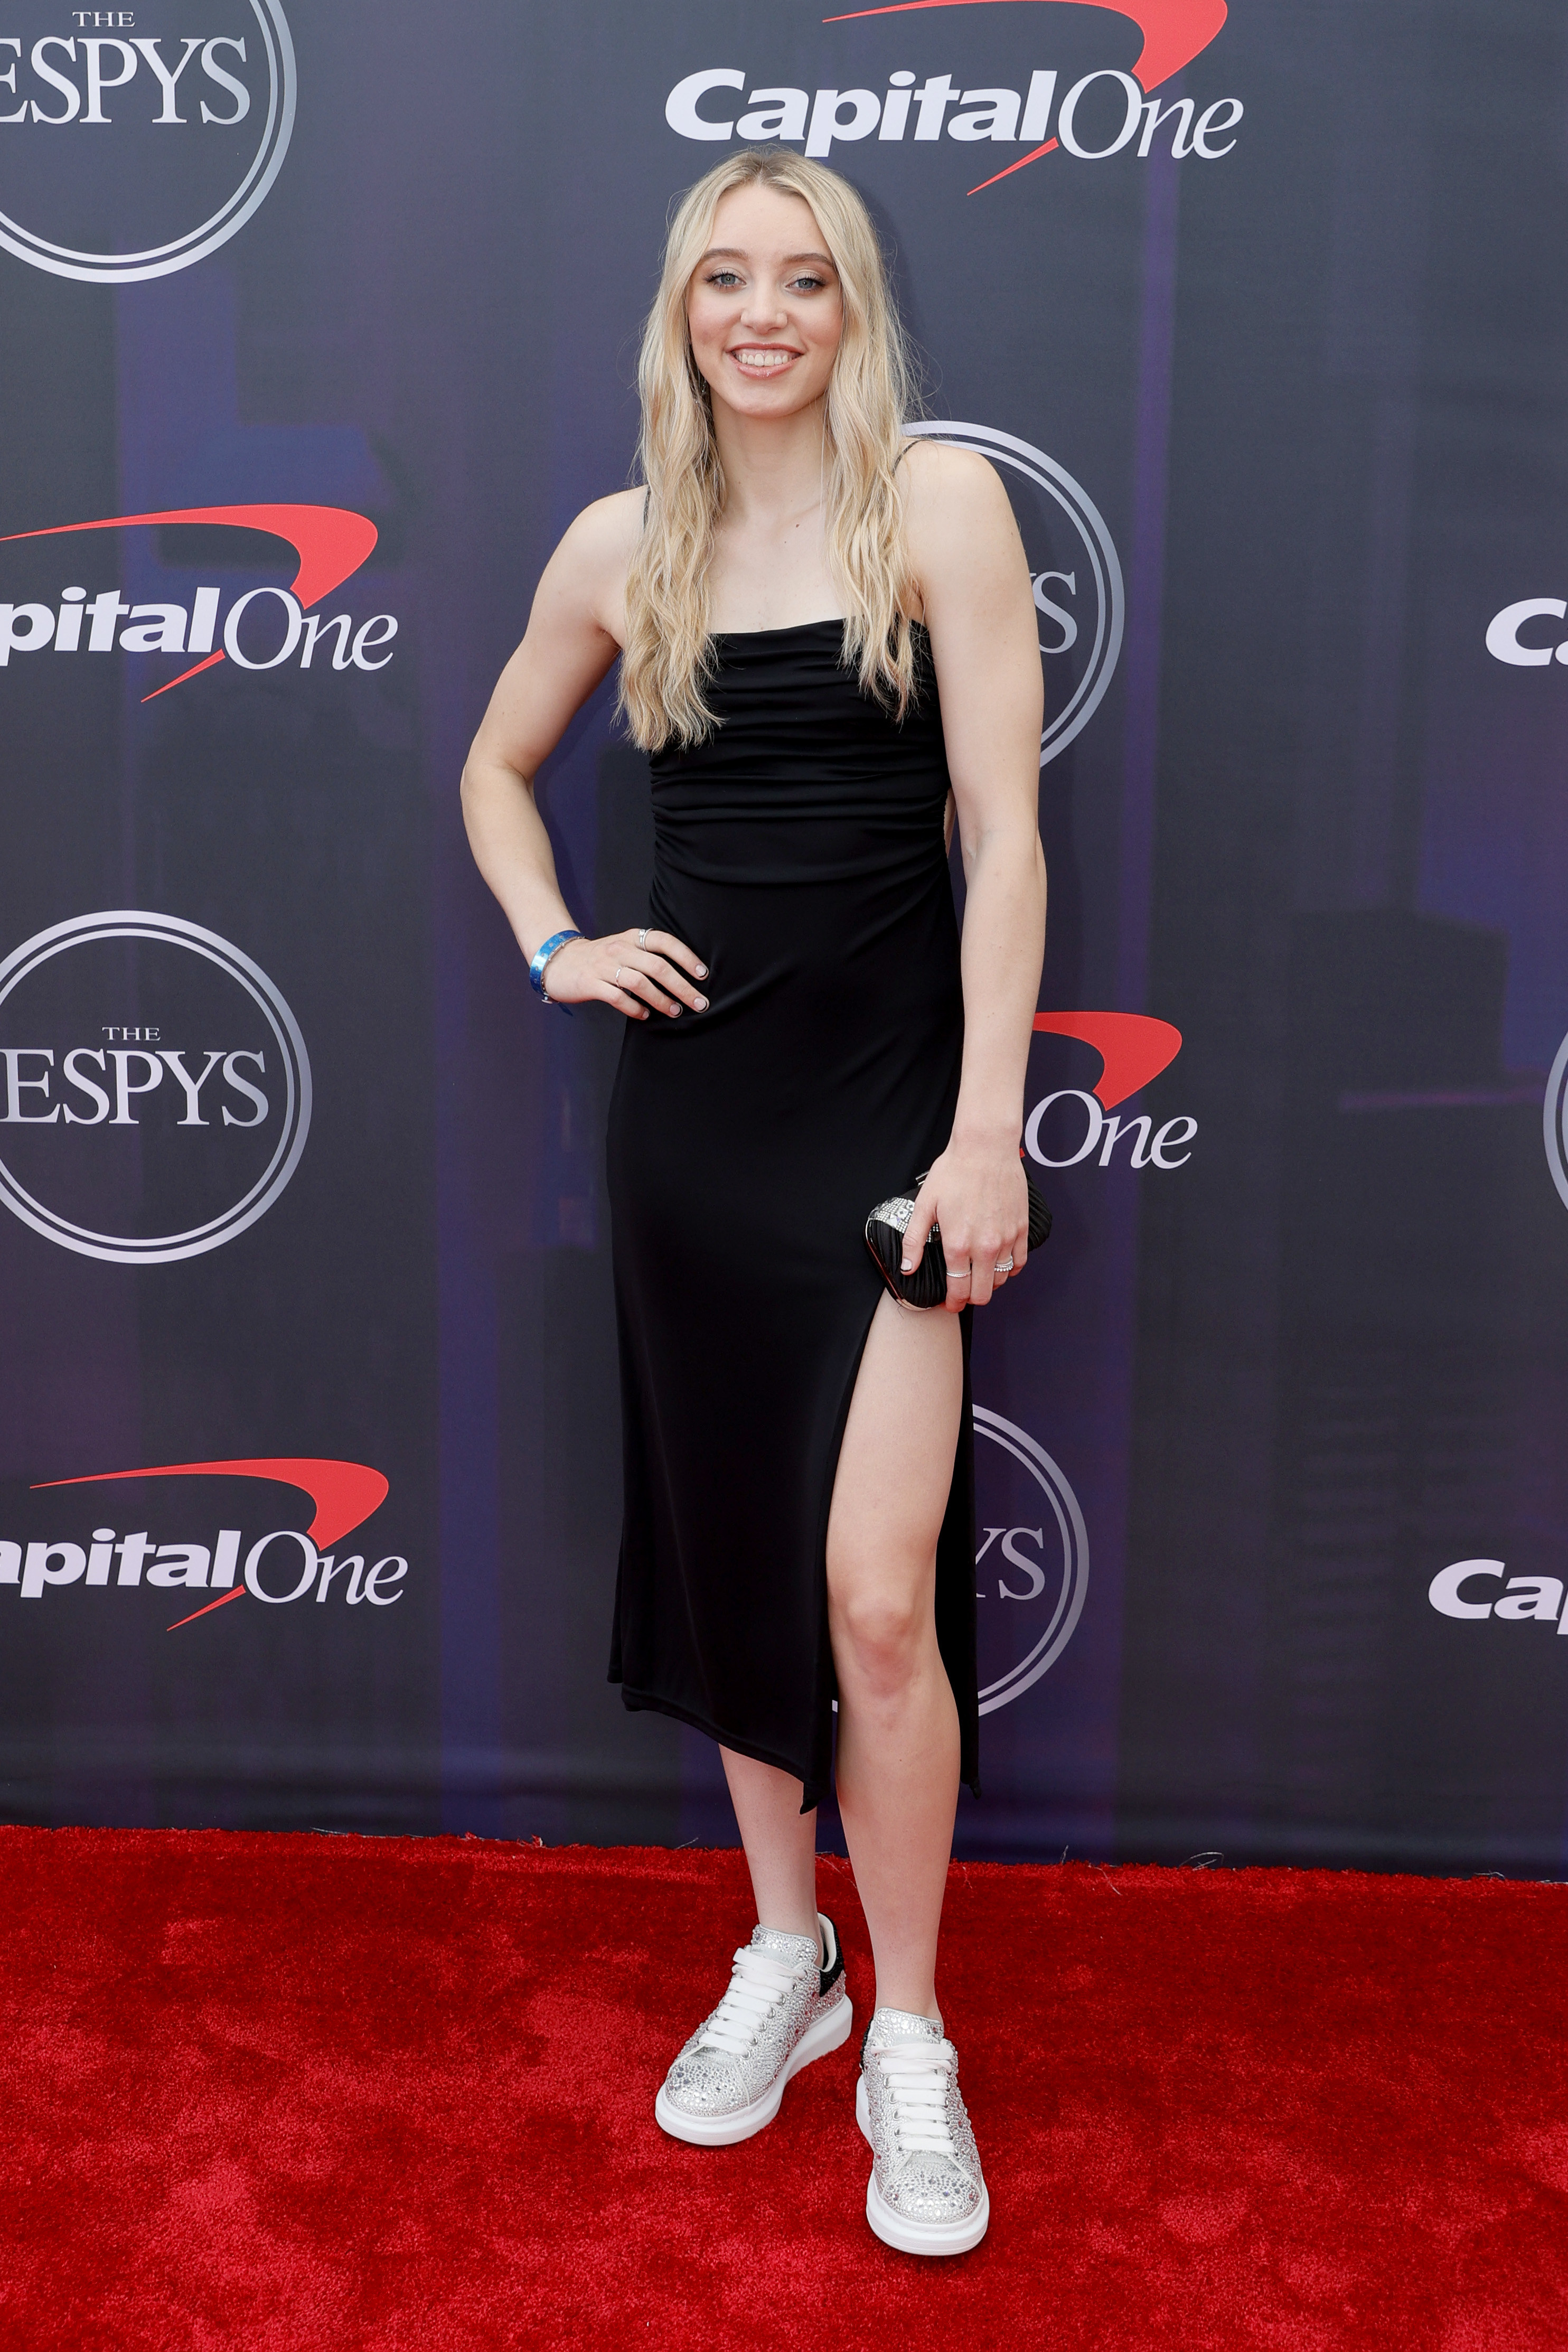 Paige wore a simple knee-length dress and sneakers